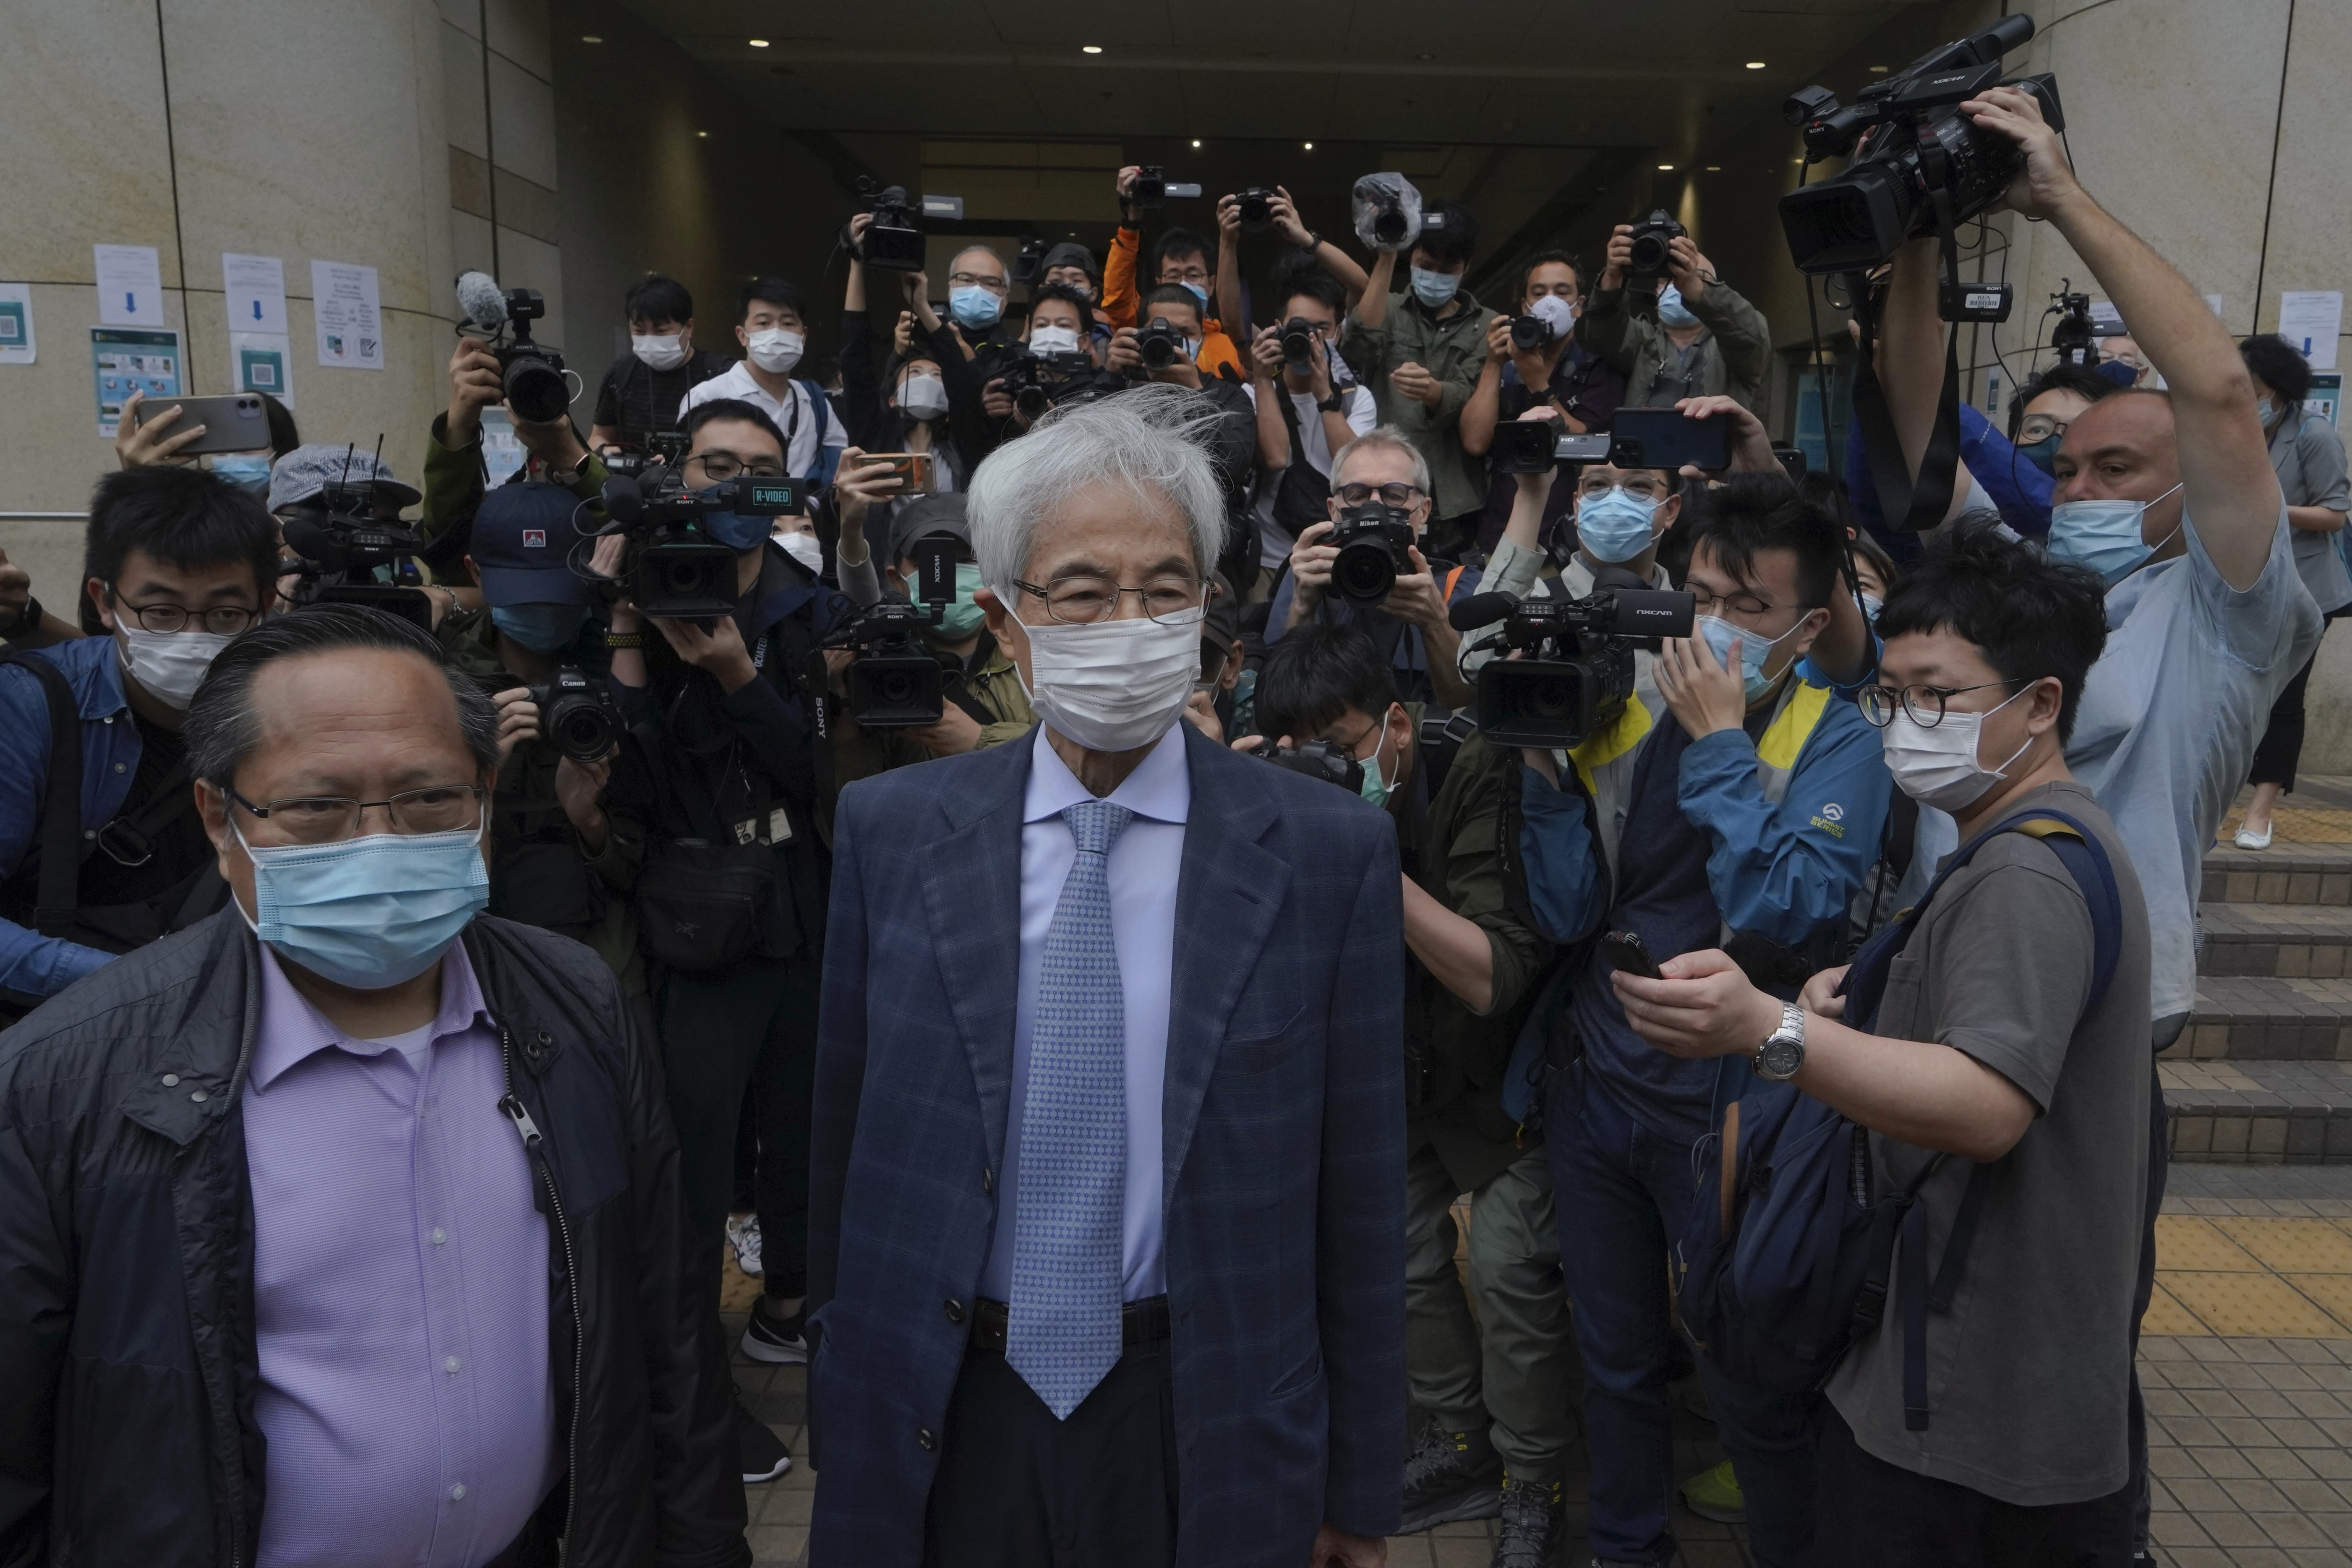 Pro-democracy activists Martin Lee, center, and Albert Ho, left, arrive at a court in Hong Kong Friday, April 16, 2021.